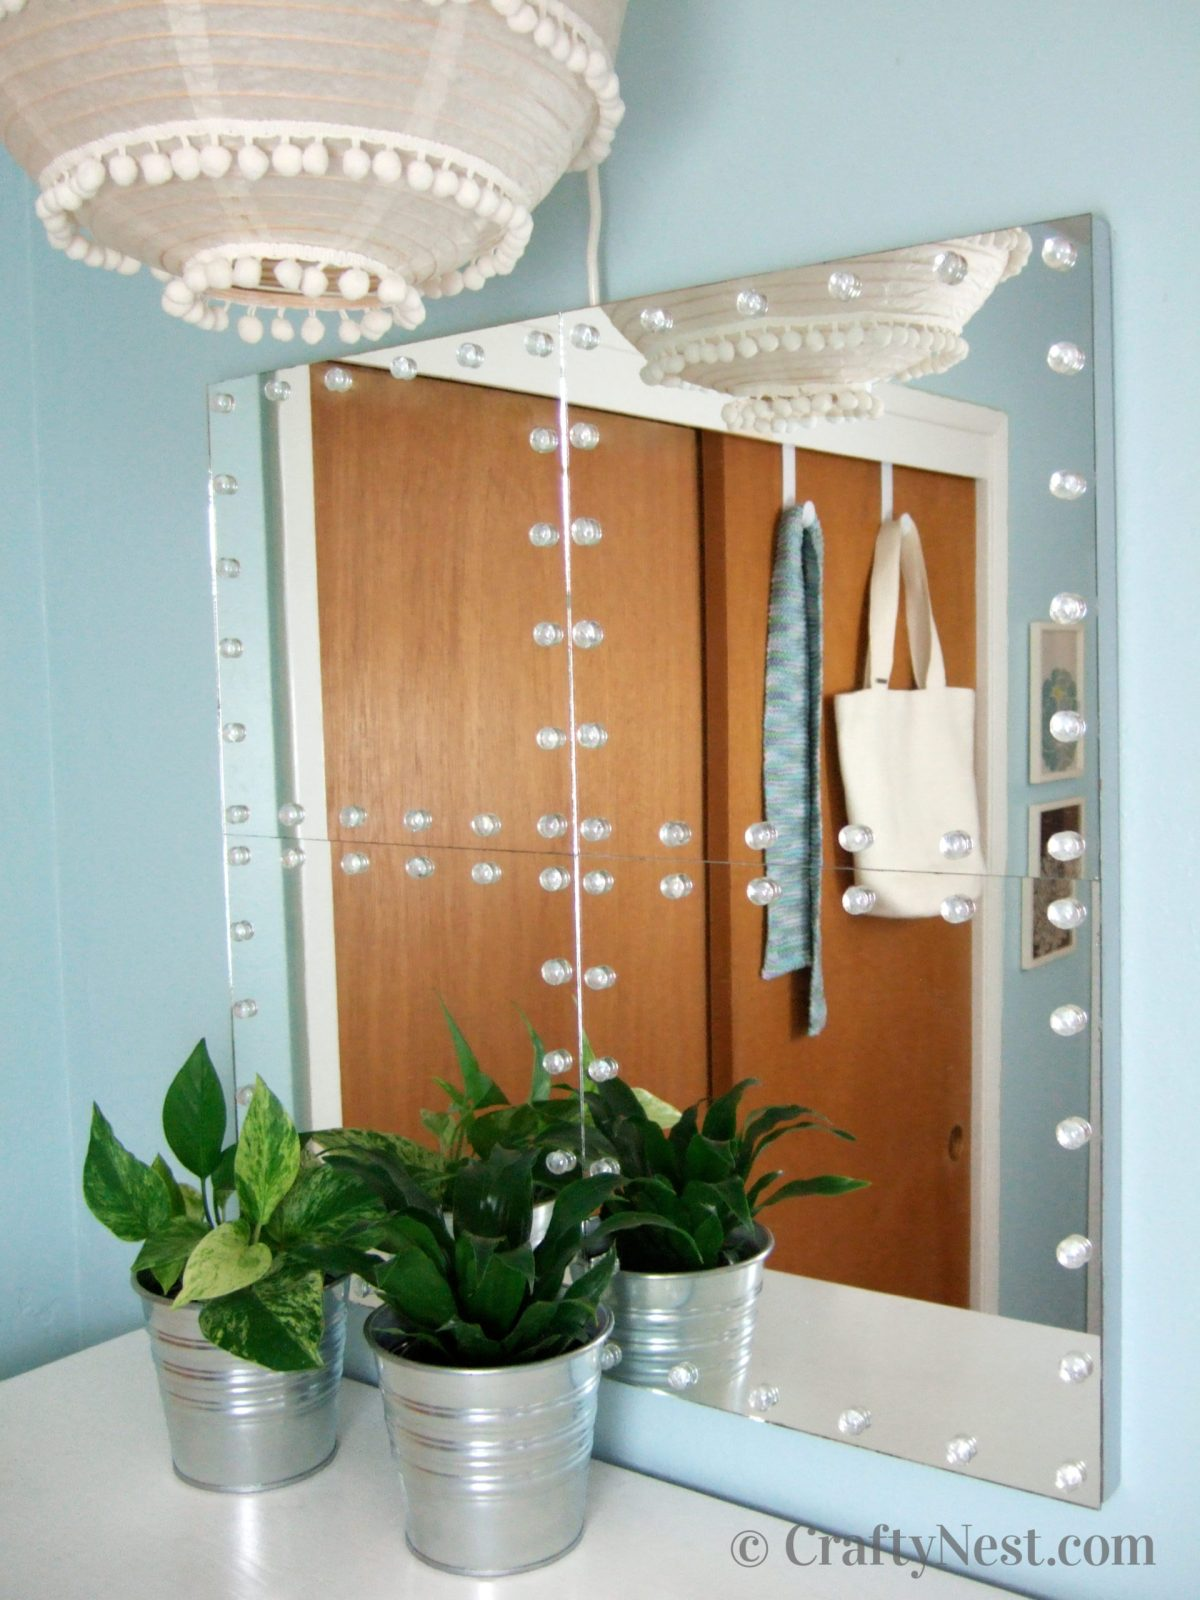 Tile mirror with glass studs, photo